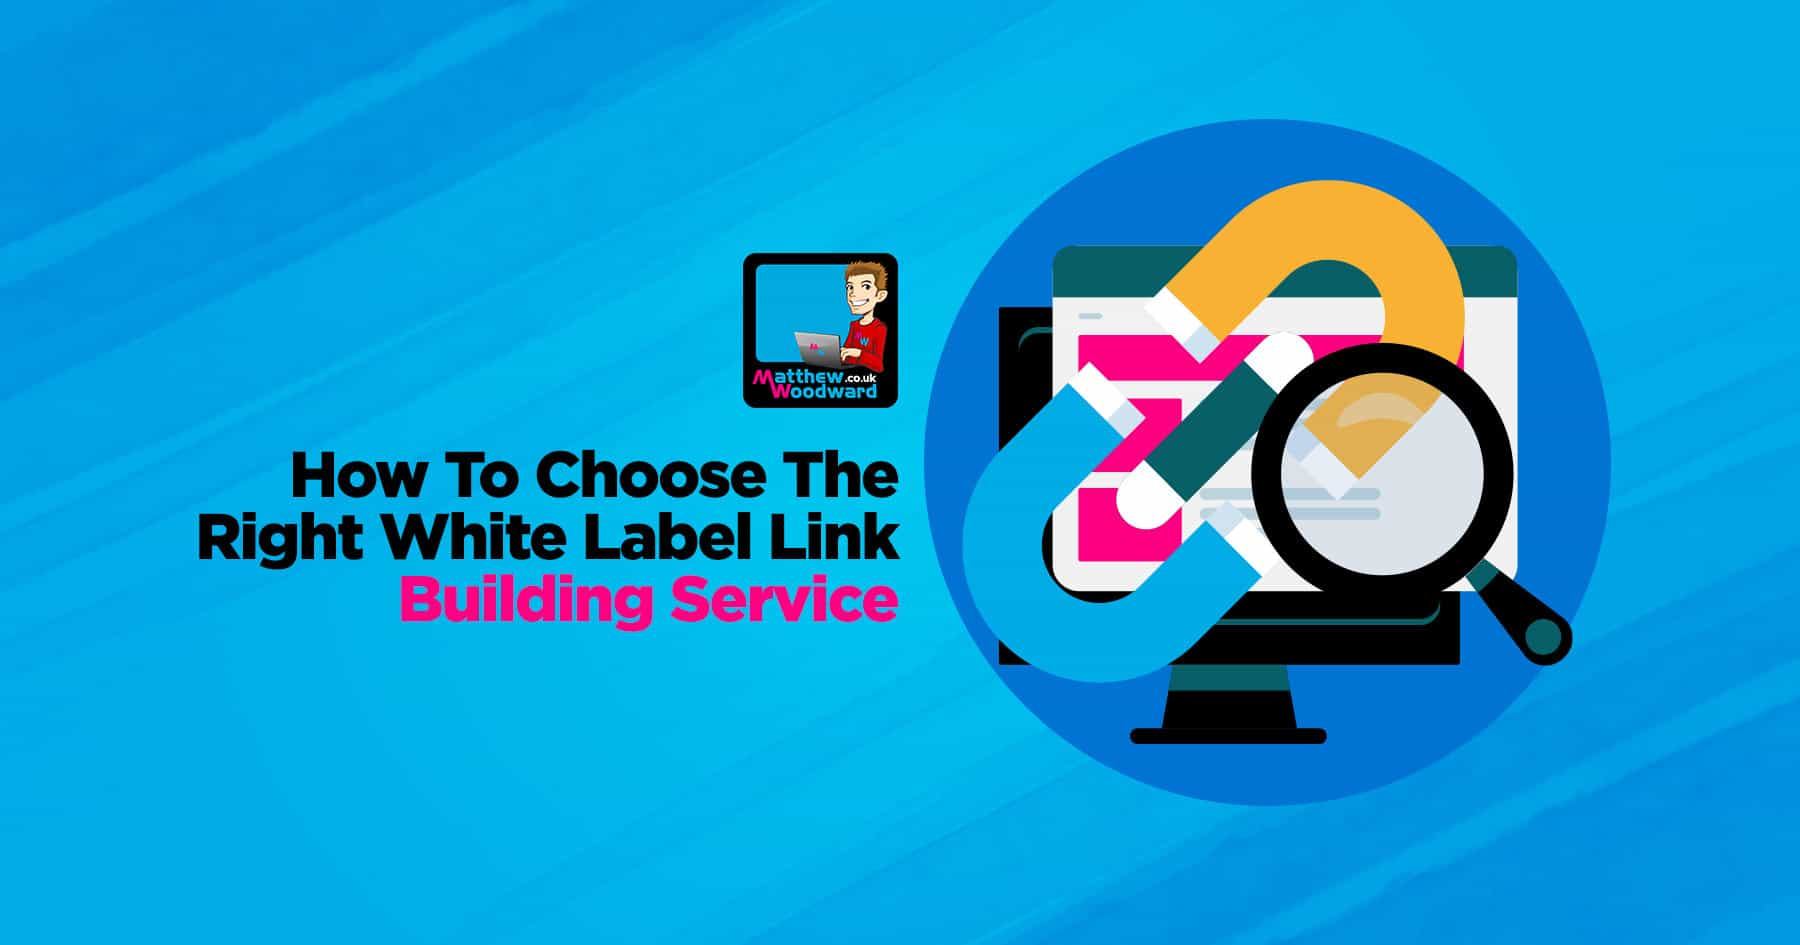 Feature Image: White Label Link Building Service